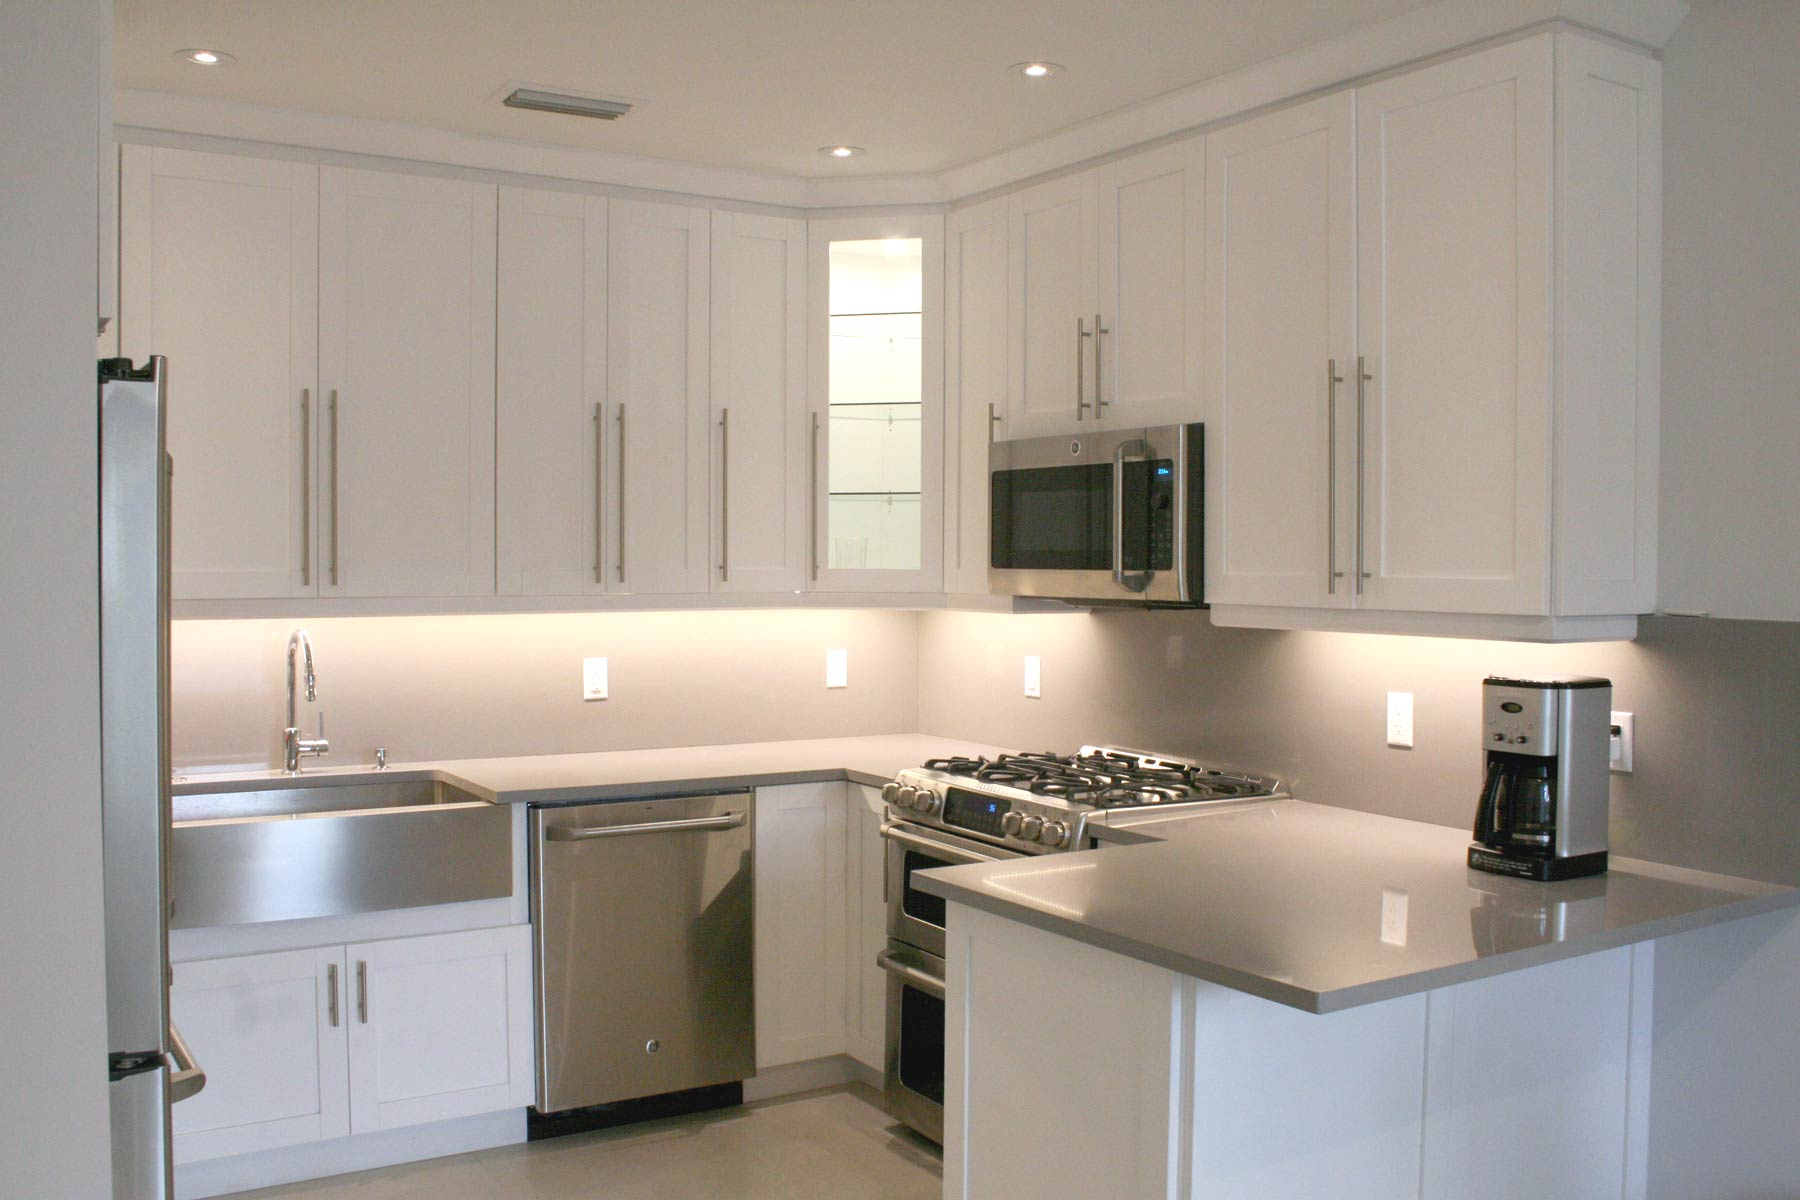 Condo Kitchen Renovation Ideas